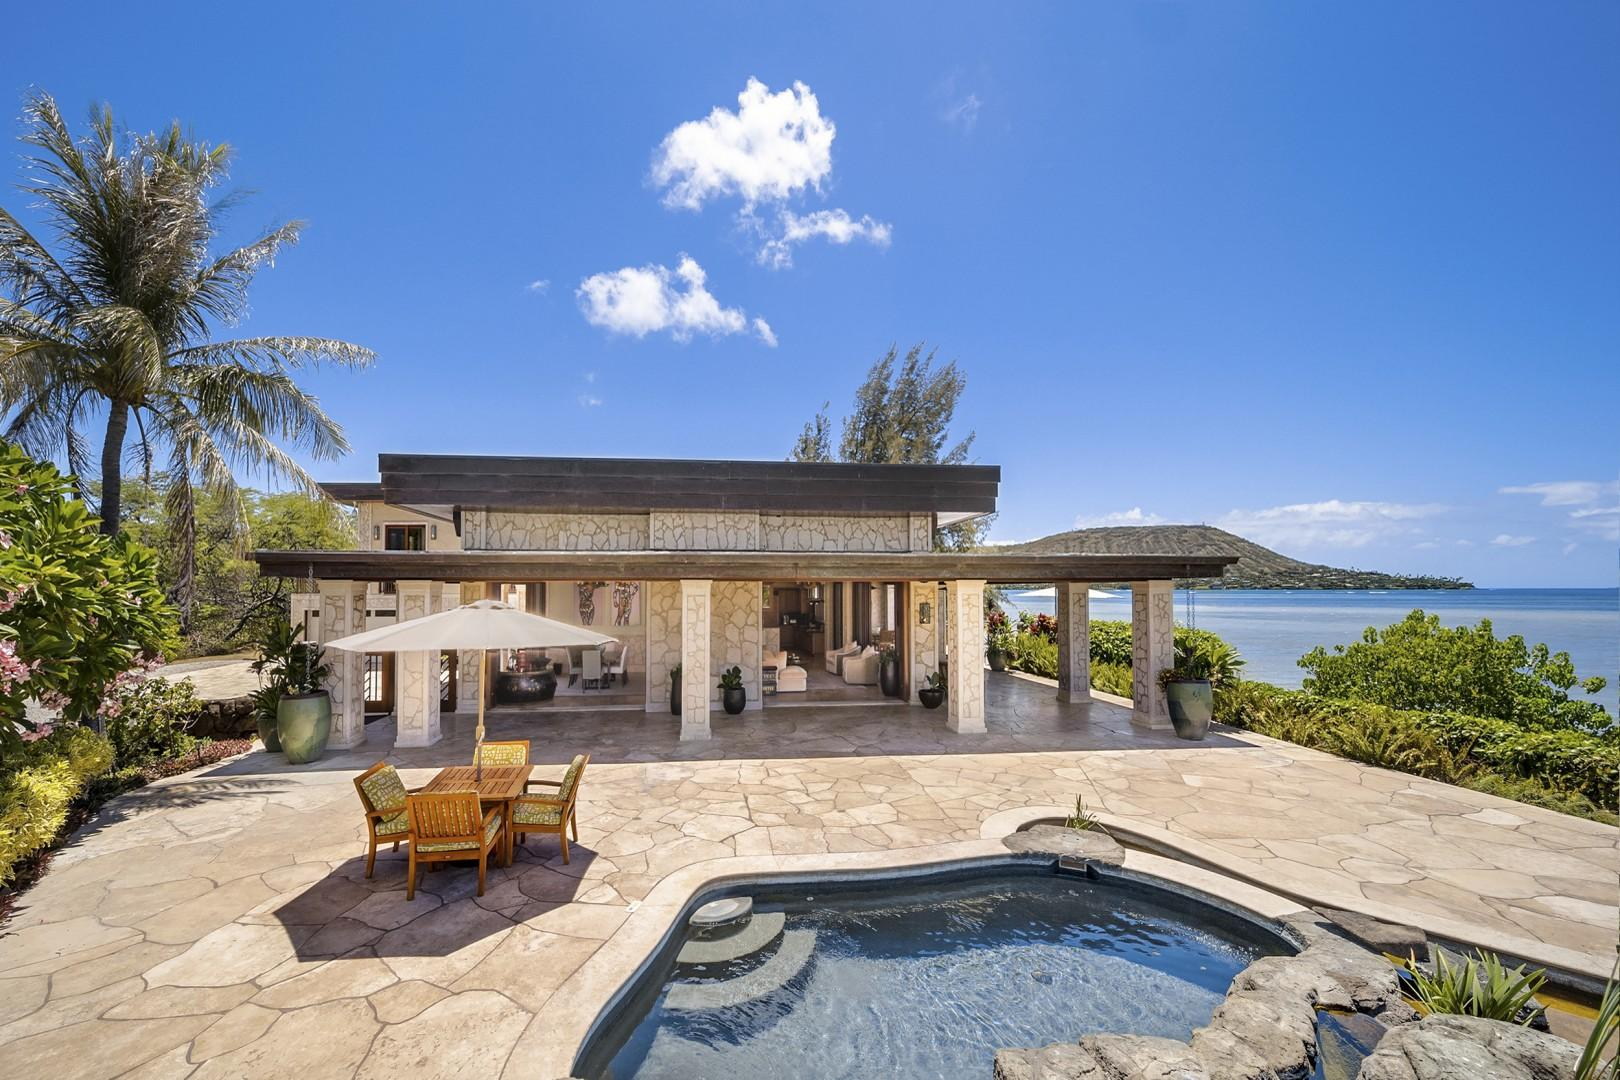 Luxurious Paiko Lagoon Estate boasts a unique and spectacular location that is ultra-private and offers spectacular ocean views